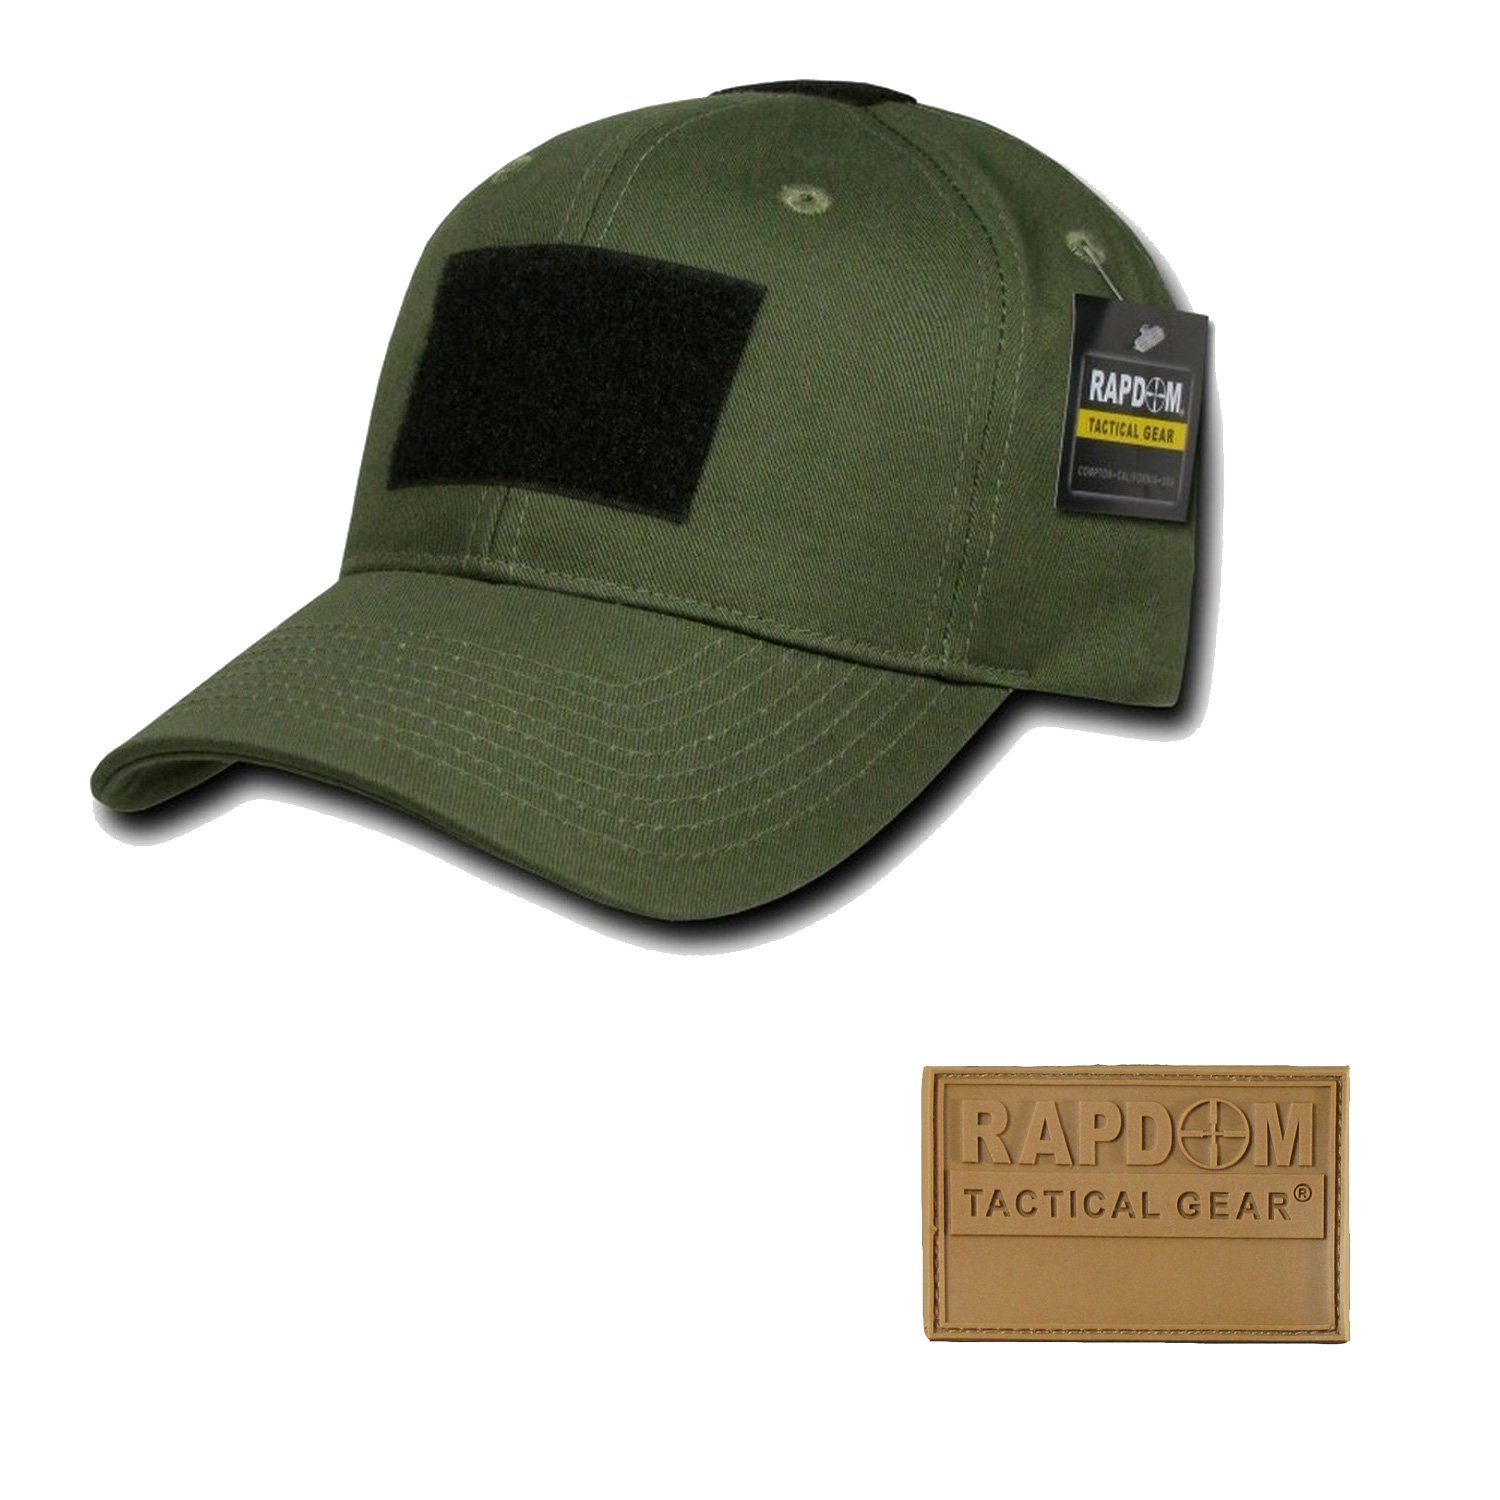 RAPDOM Genuine Tactical Constructed Ball Operator Cap Olive Caps with Free Patch (Olive, RAPDOM Genuine Coyote Patch) by RAPDOM